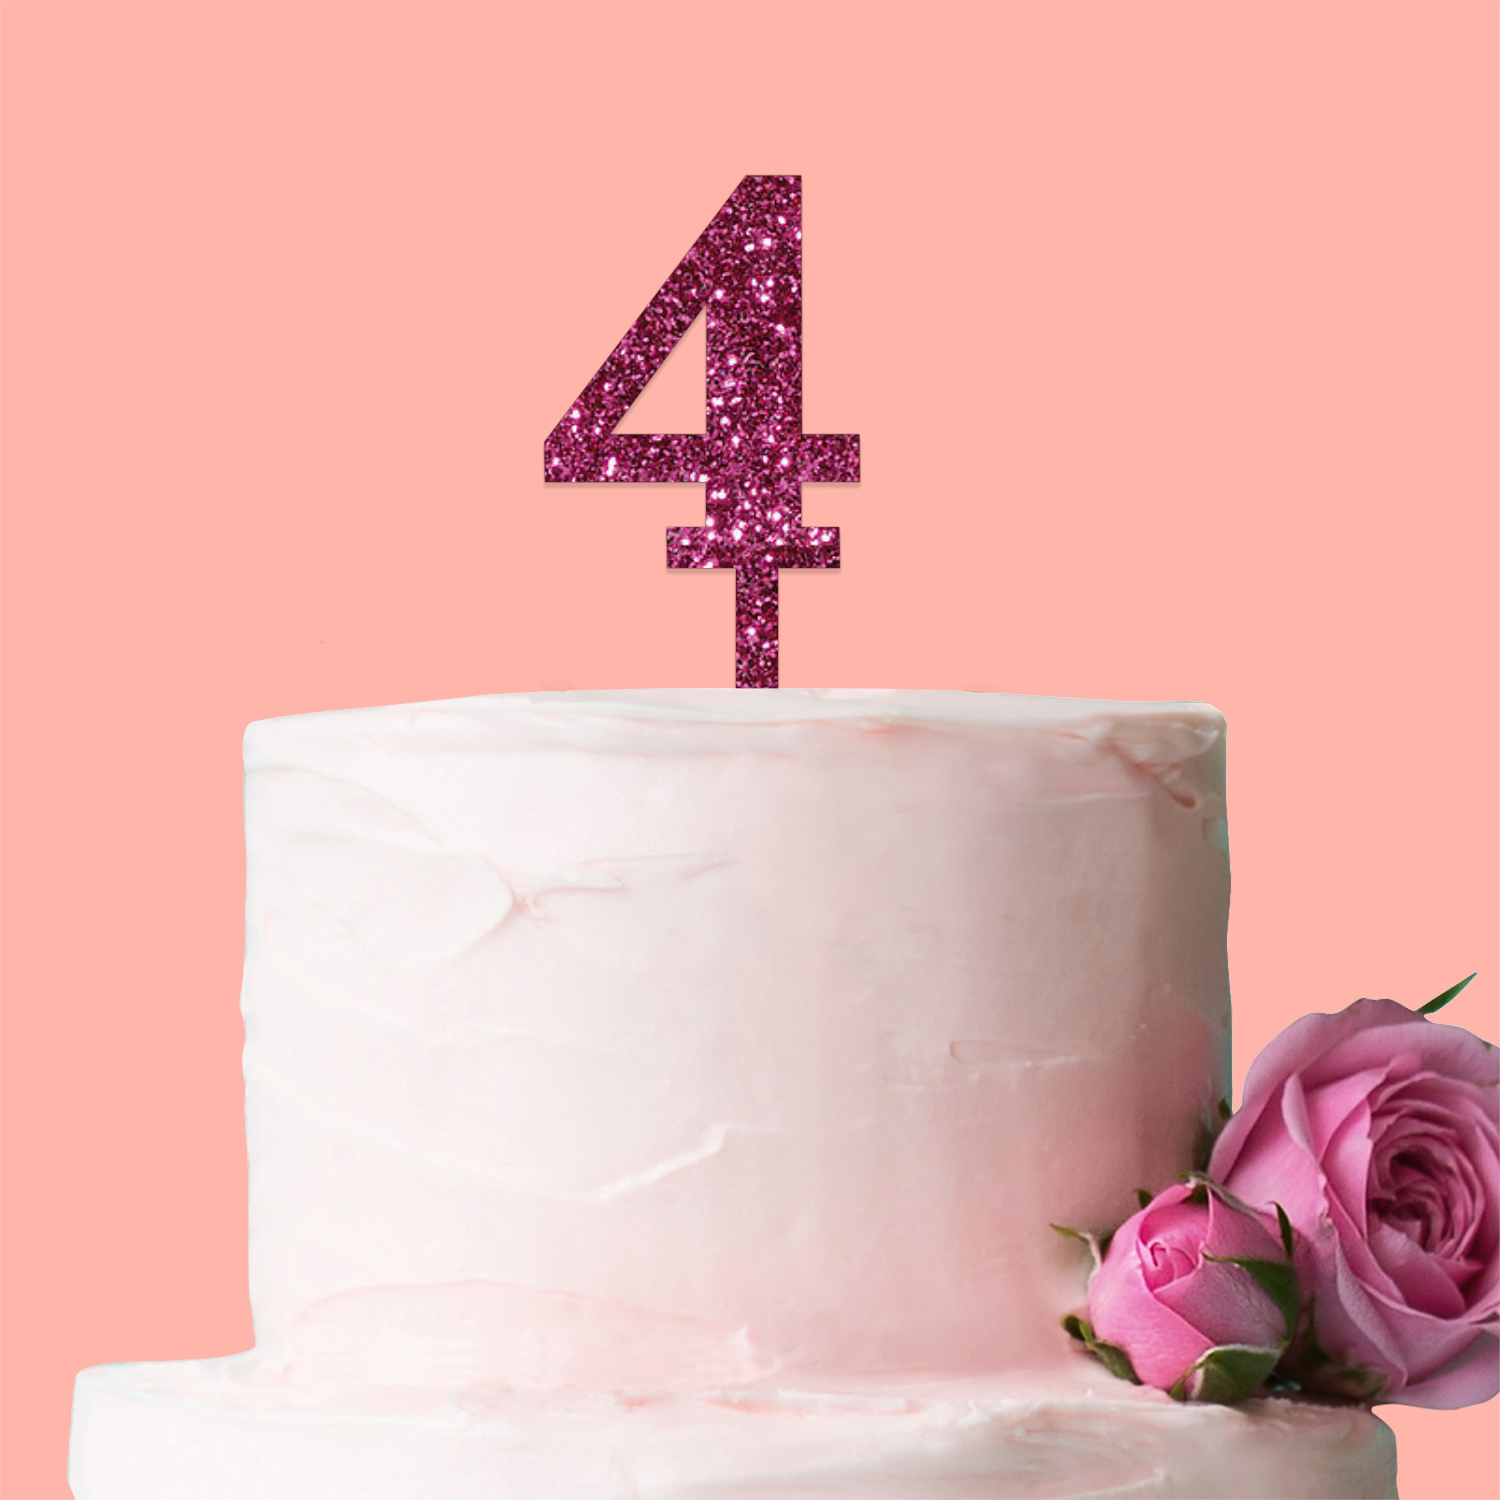 09 Number Cake Topper Glitter Pink Birthday Decoration Present Gift